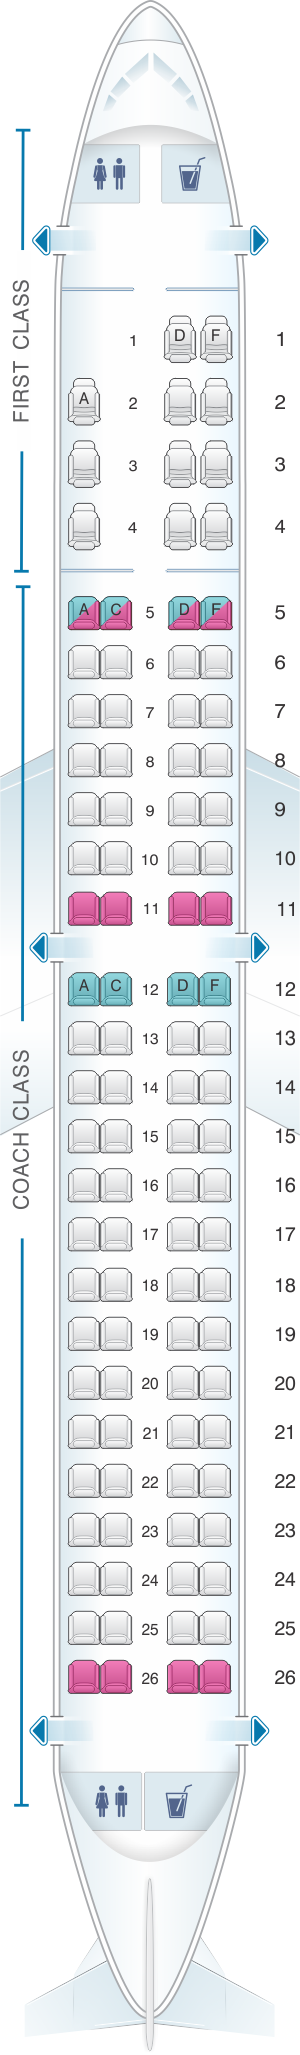 Seat map for US Airways Embraer 190